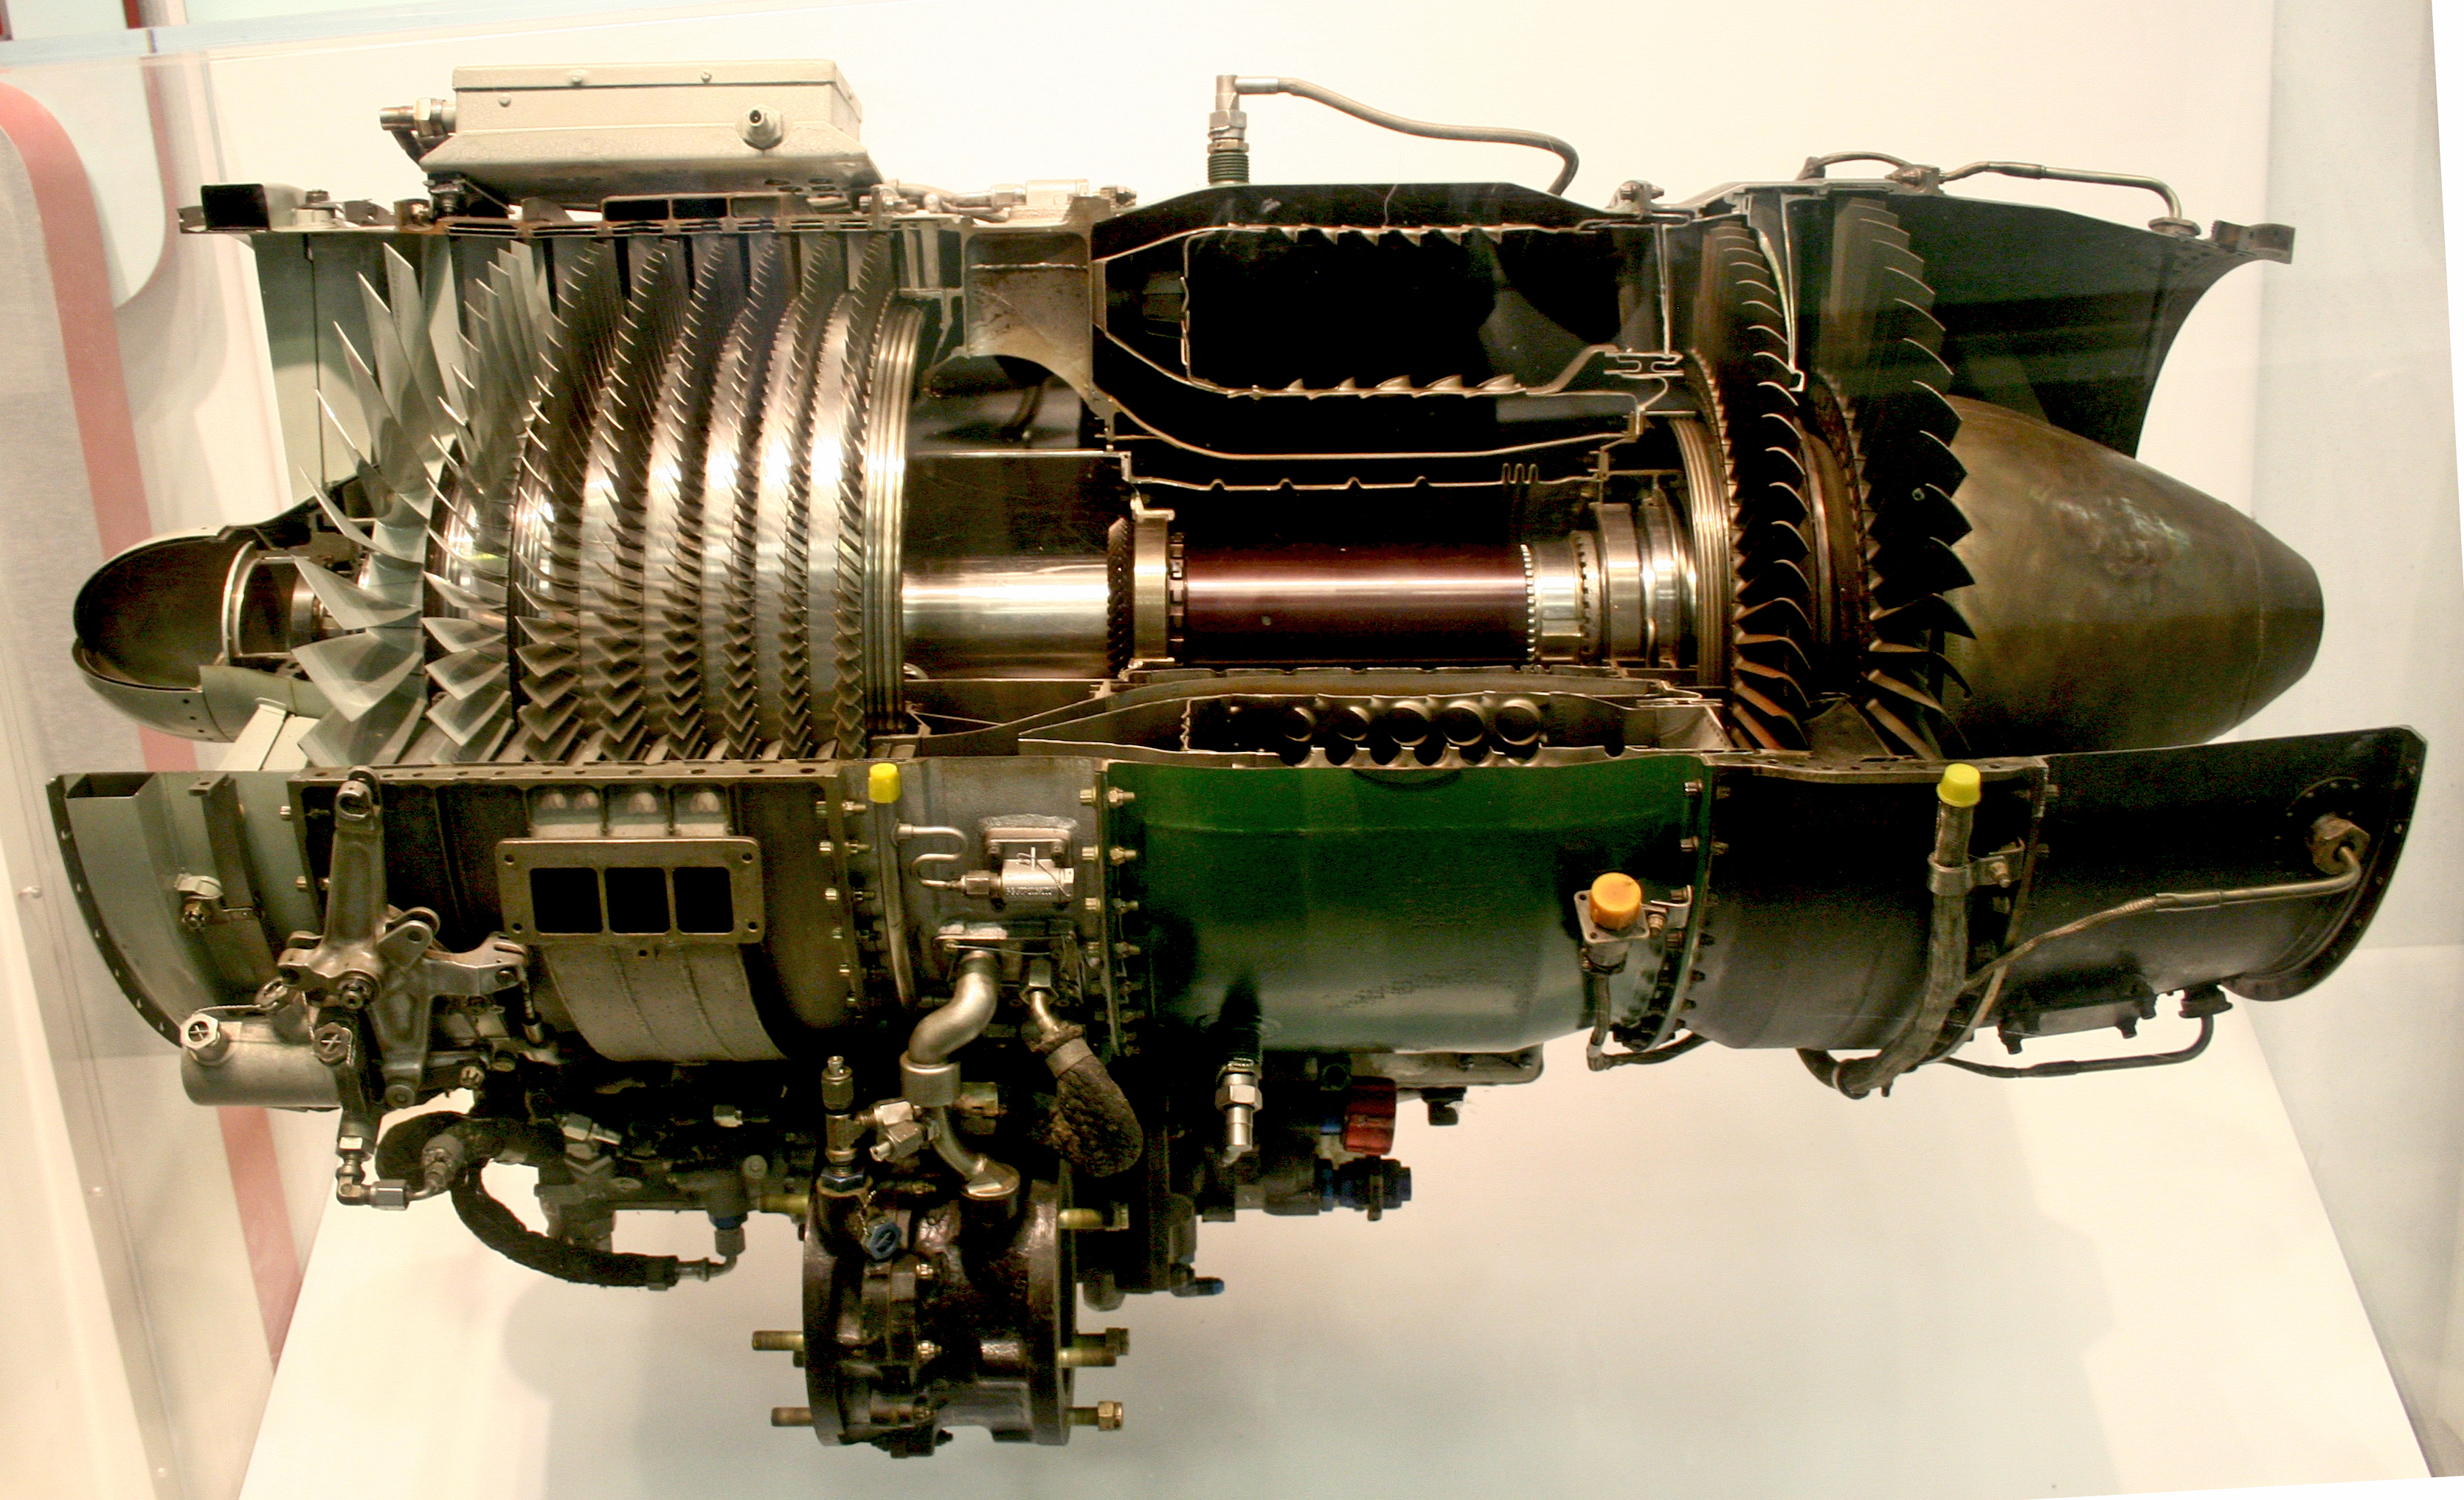 history of the jet engine Jet propulsion had its beginnings in the turbo superchargers devised by dr sanford moss in 1918 these were used to improve the performance of reciprocating engines at high altitude frank whittle received the patent in 1930 for a jet engine hans von ohain received the german patent in 1935 the.